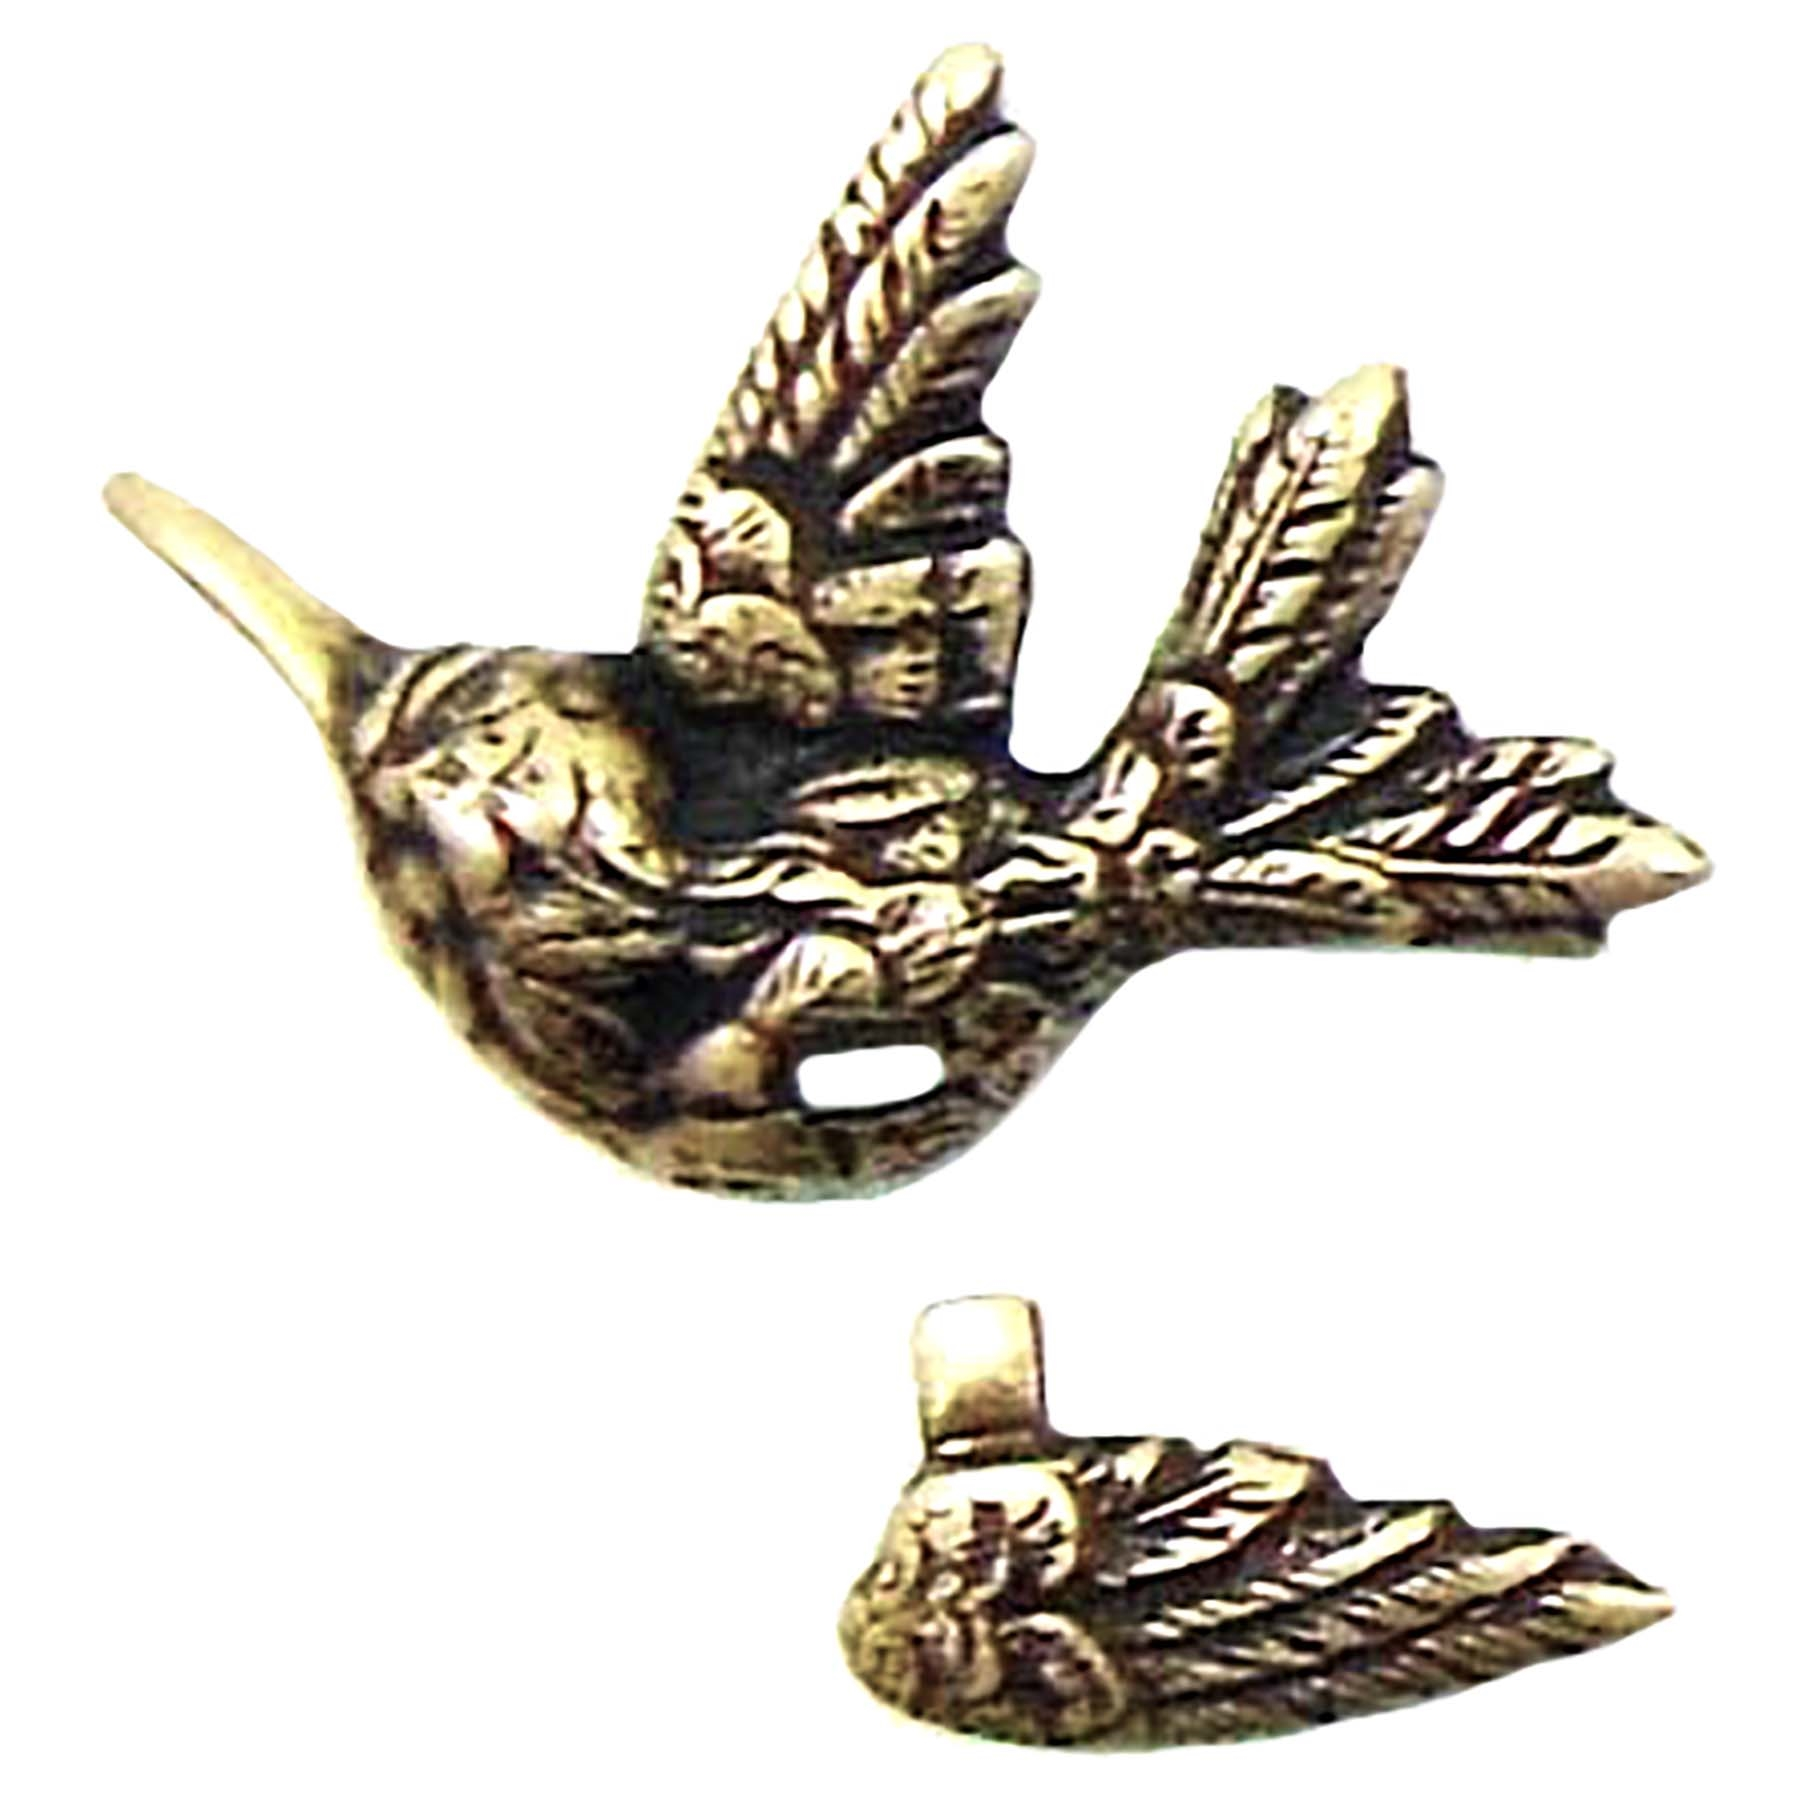 brass bird stamping, brass ox, 08081, antique brass, bird jewelry, jewelry making supplies, vintage jewelry supplies, brass birds, attachable wings, bird with wing,  bsueboutique, US-made, nickel-free jewelry supplies,